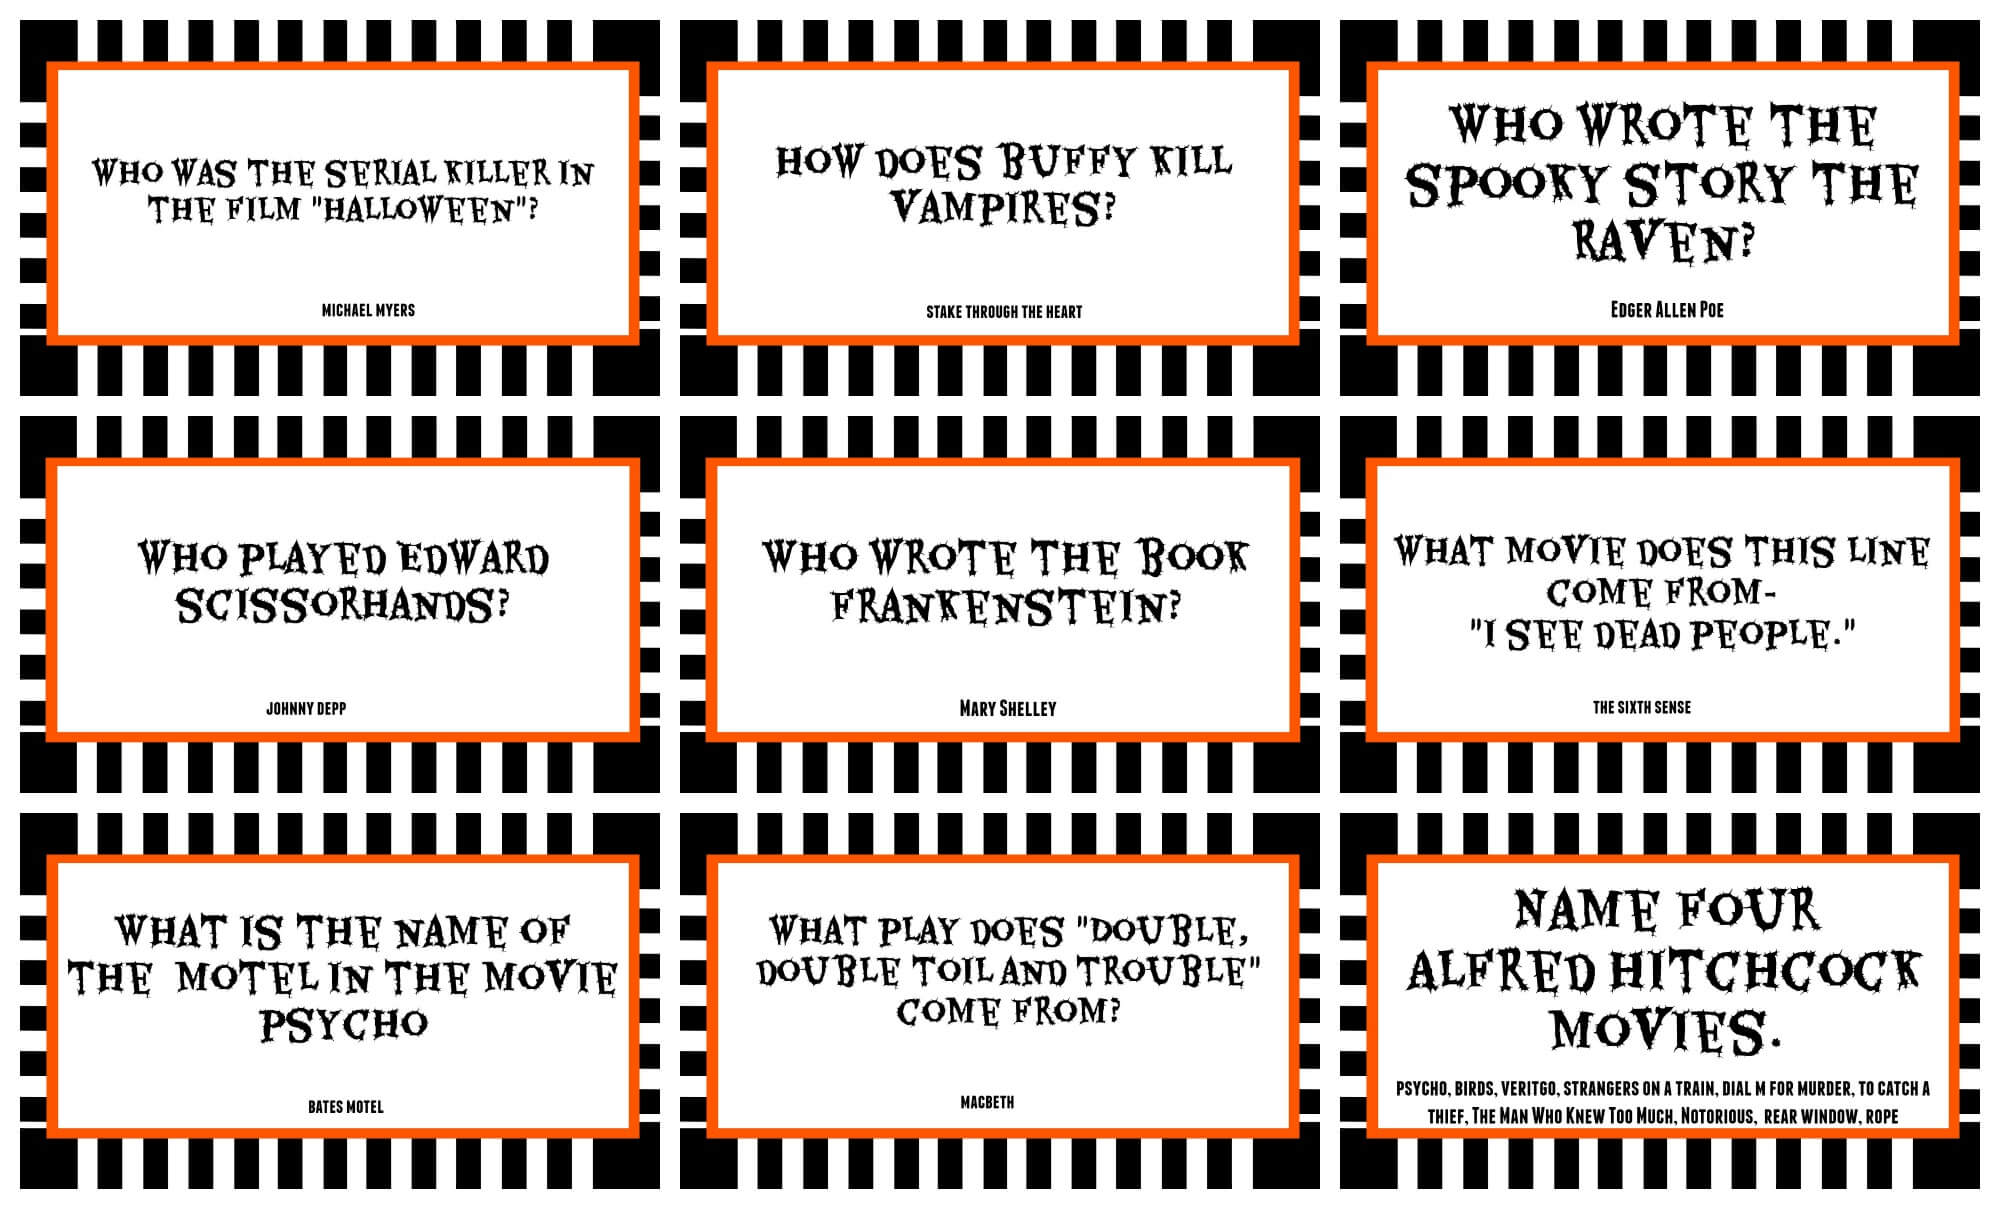 halloween trivia questions riddles - Halloween Trivia With Answers